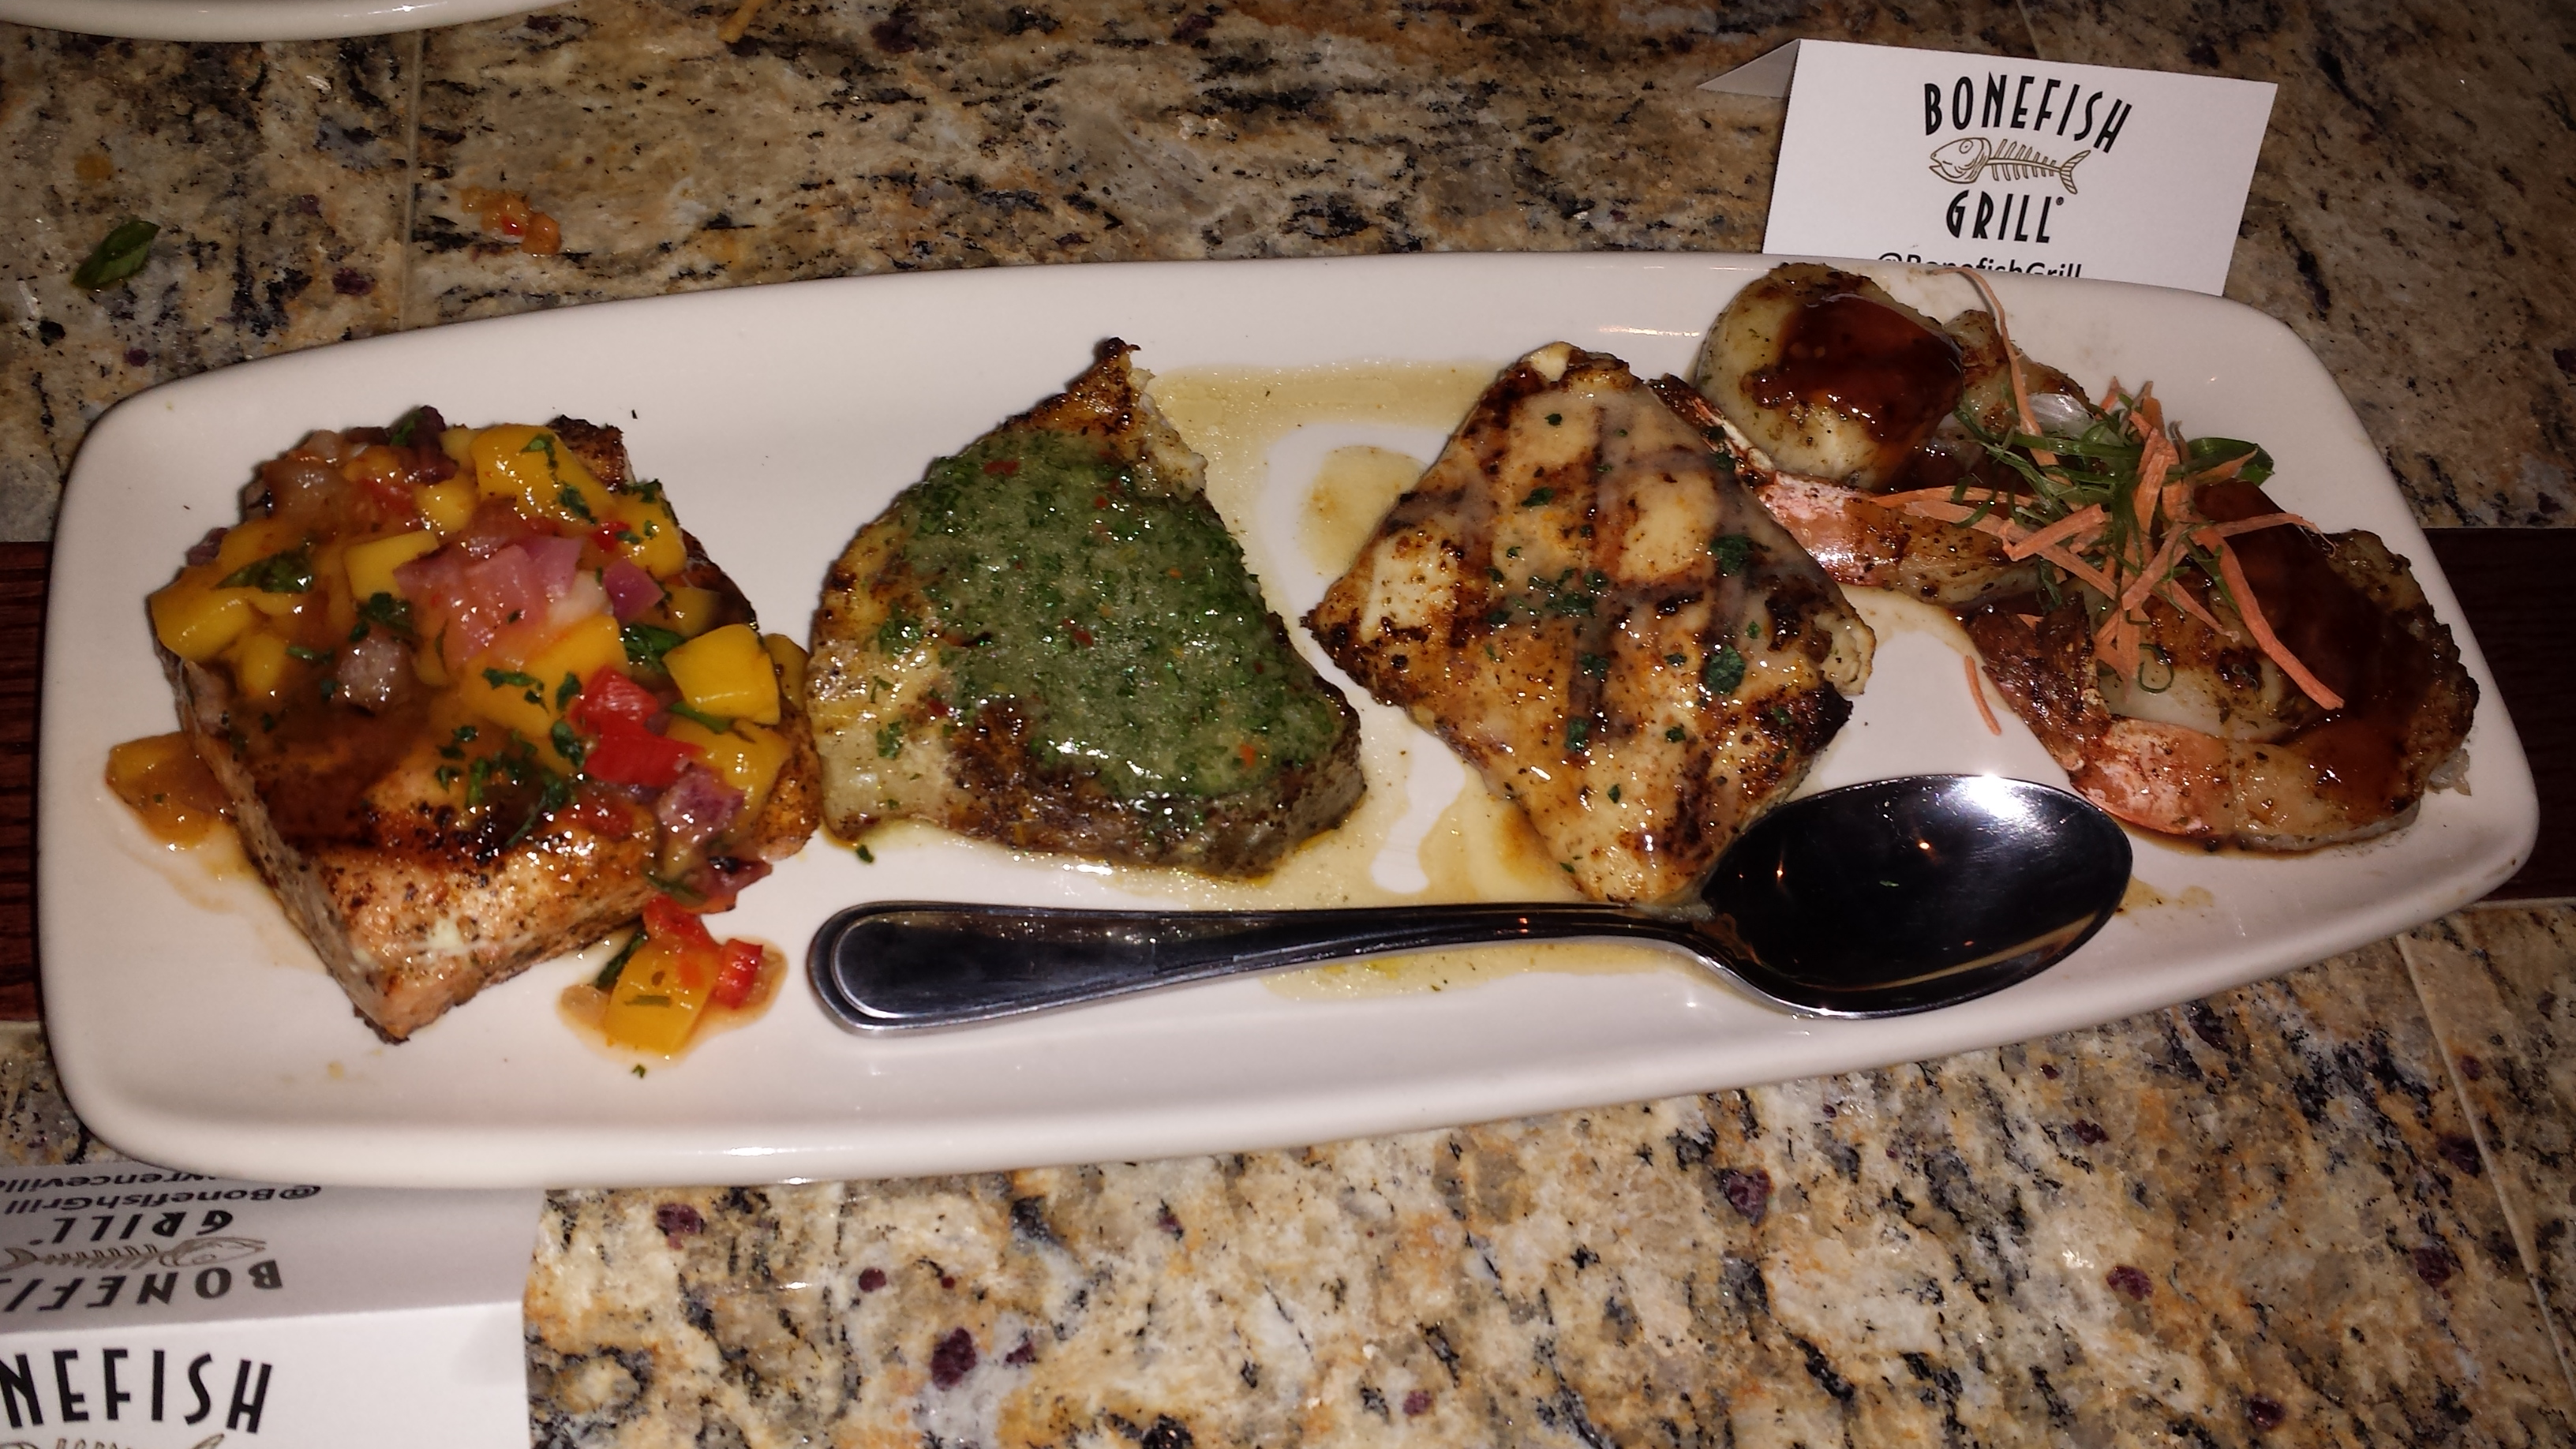 Bonefish grill fish ahoy nj spice for Fish grill menu